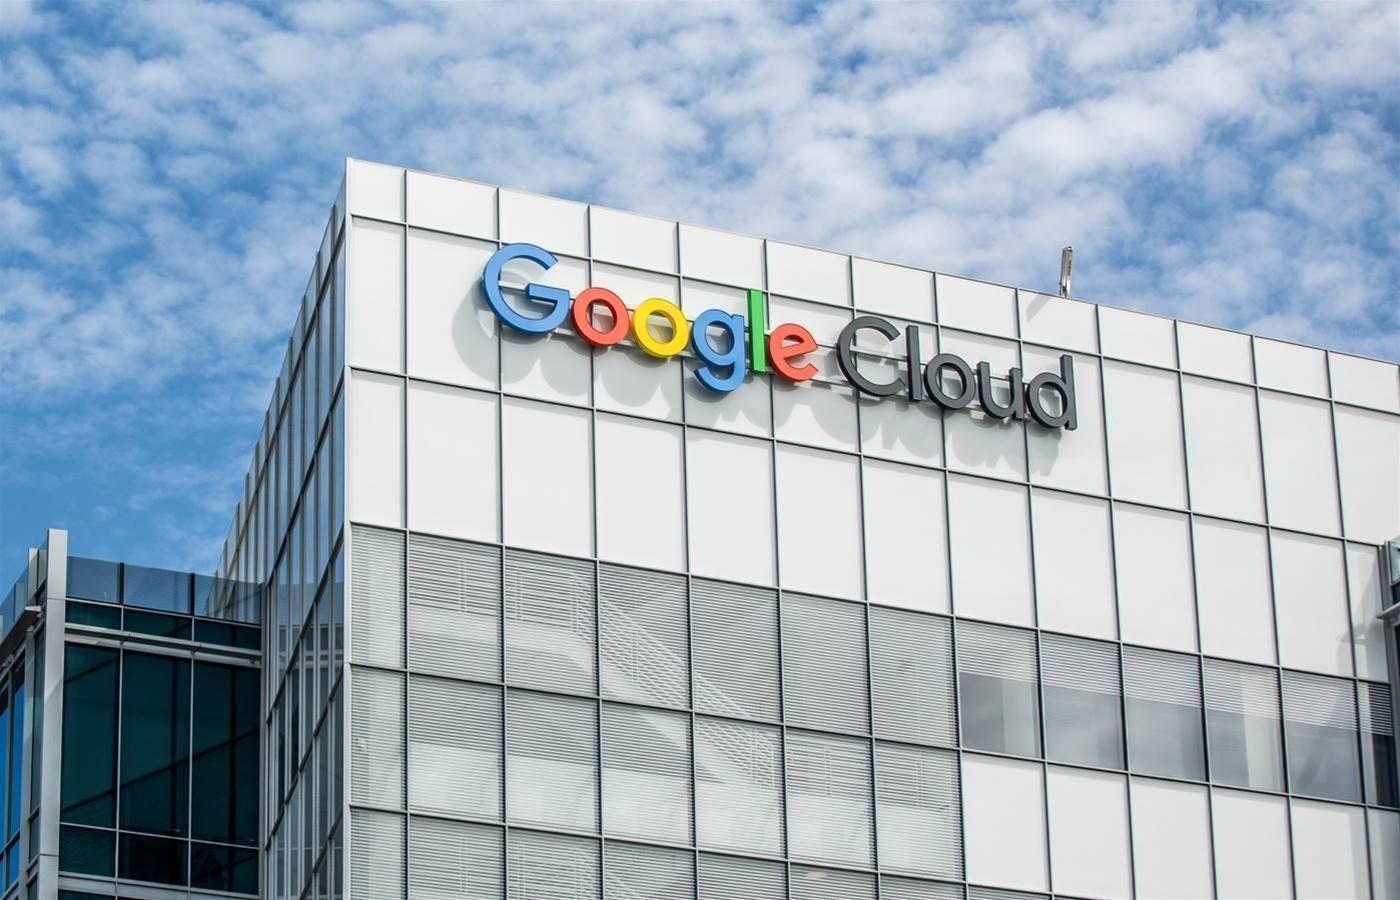 Google Cloud buddies up with open source giants